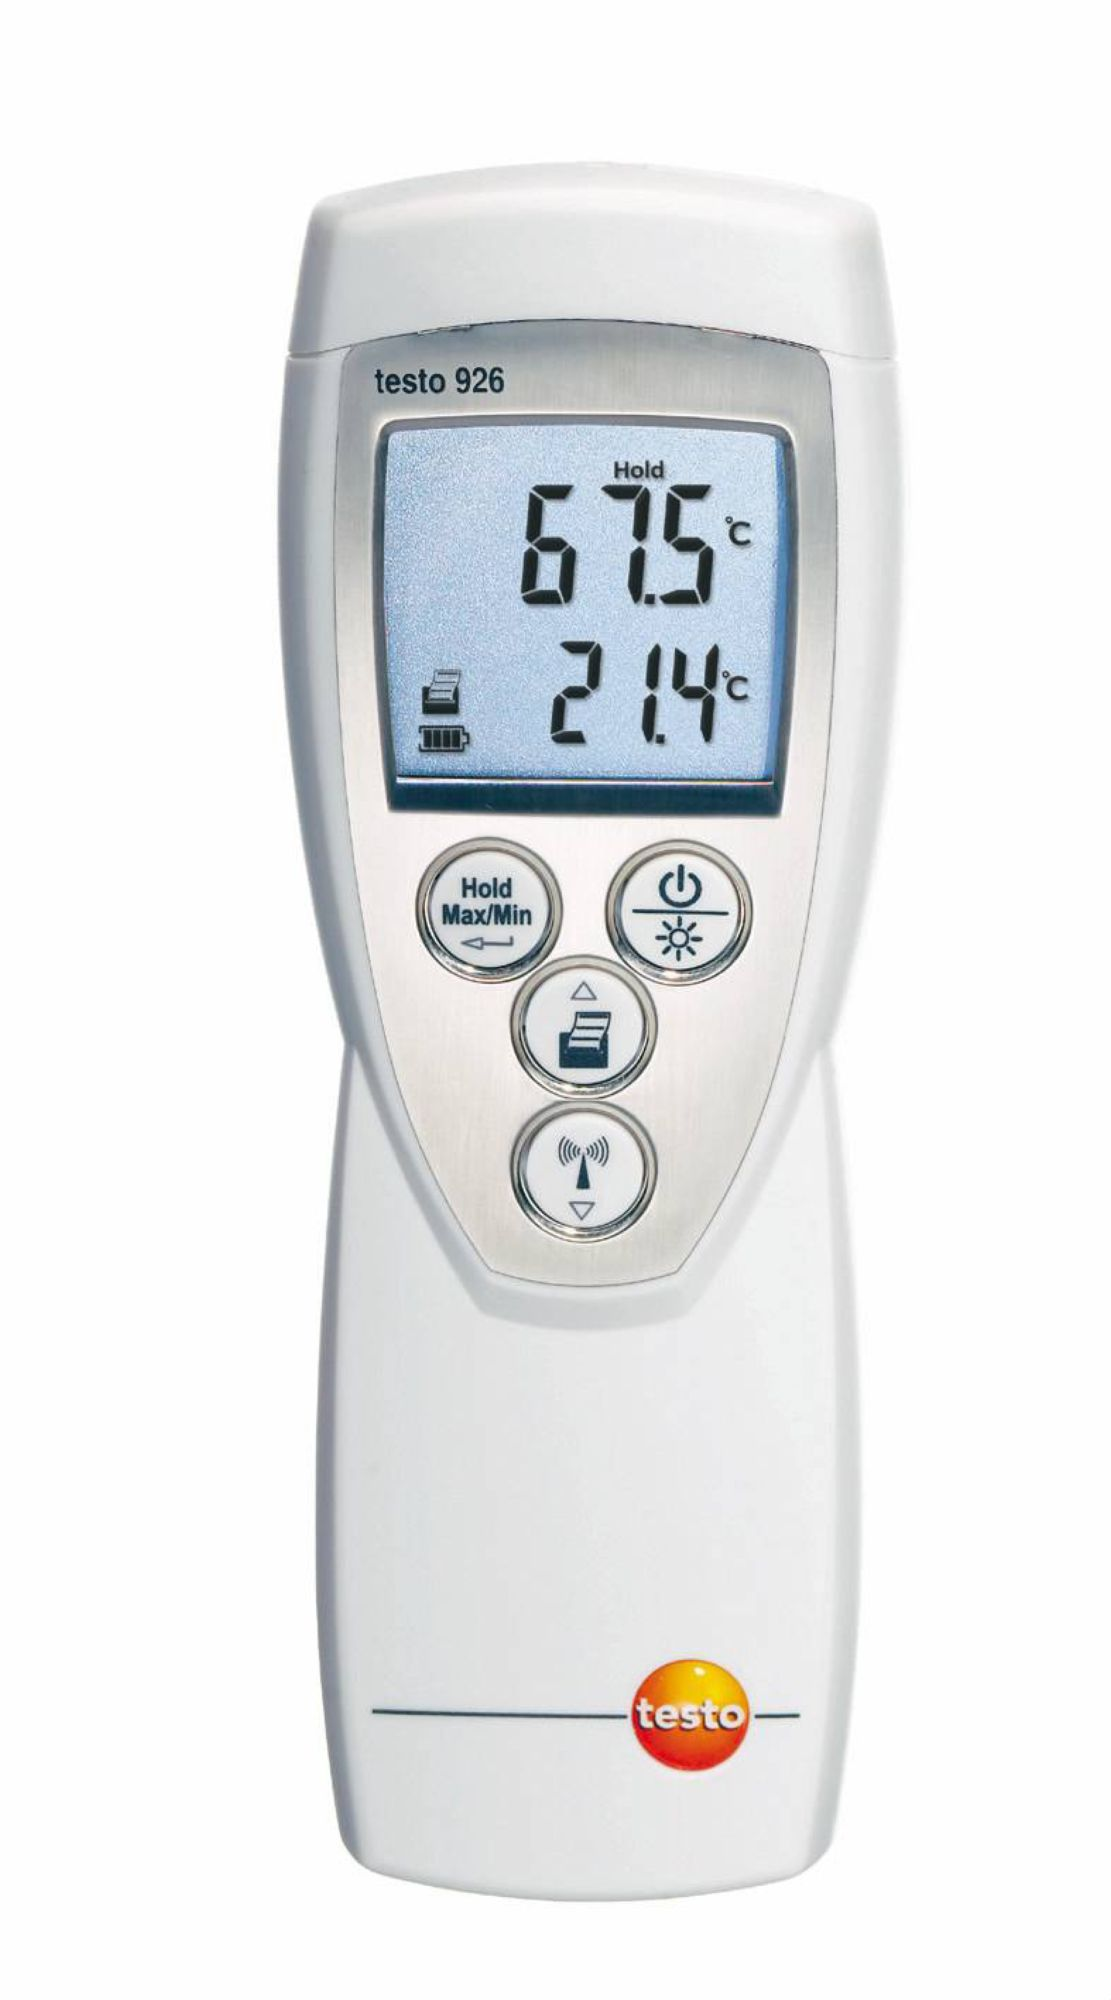 alt text de pi_testo-926_temperature-meter